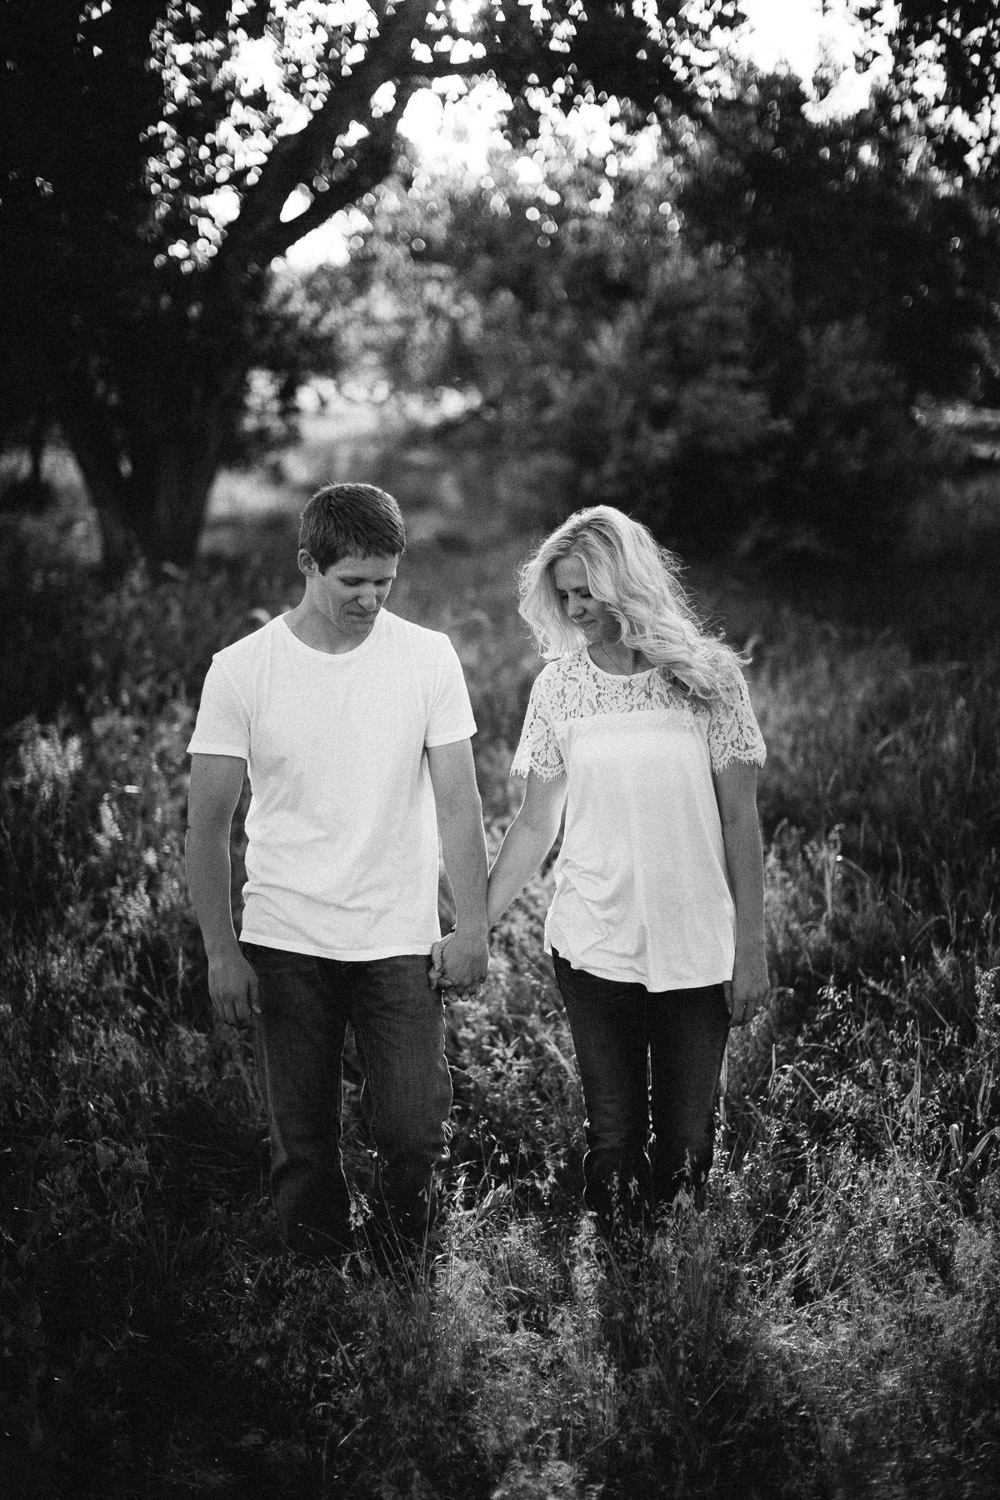 SiouxFalls_BlackHills_Adventure_Engagement_Wedding_Photographer_09.jpg